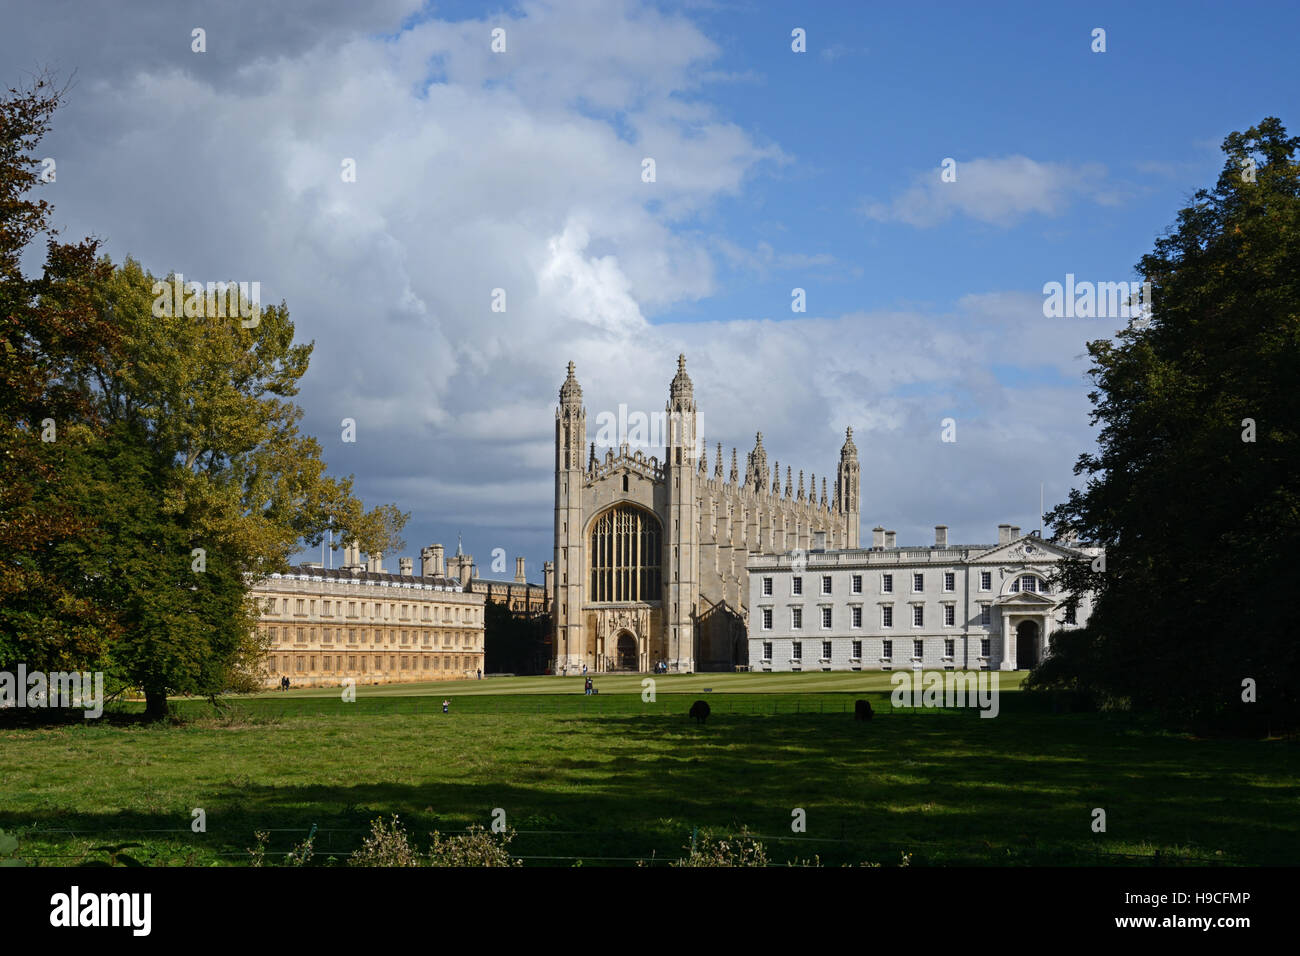 Schönes Licht am Kings College, Cambridge, England. Stockbild